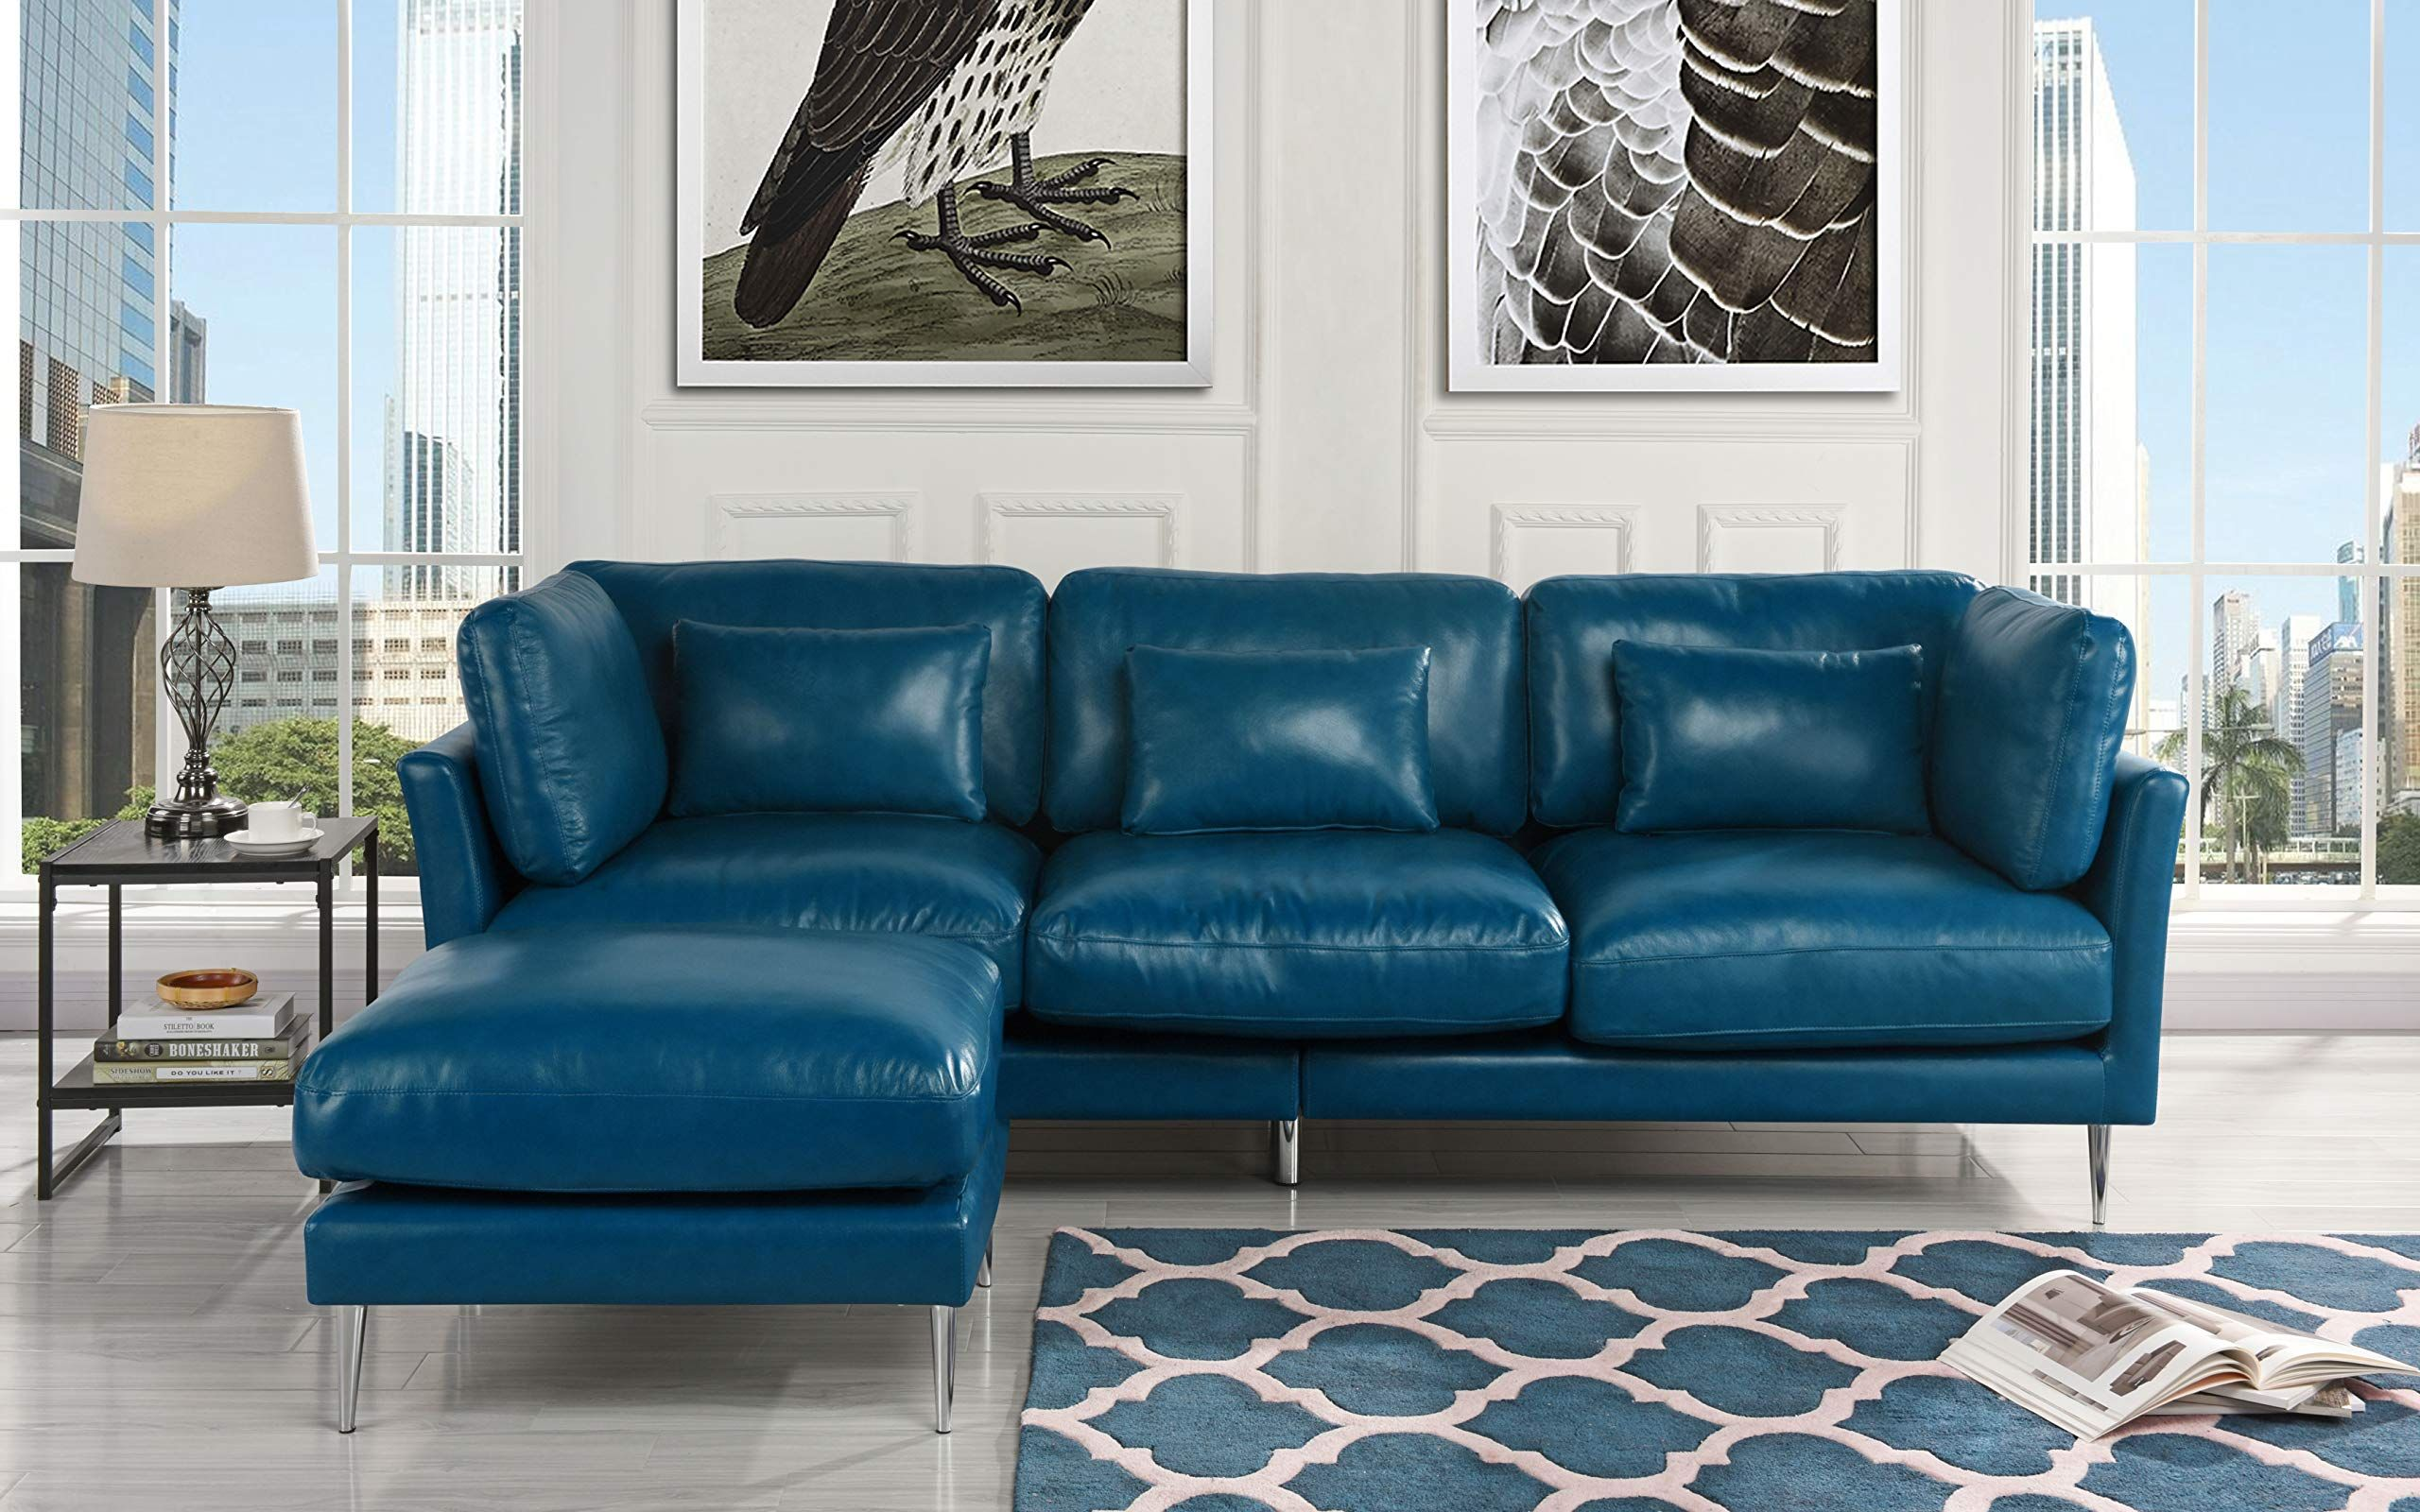 Modern Leather Sectional Sofa L Shape Couch Navy Blue You Can